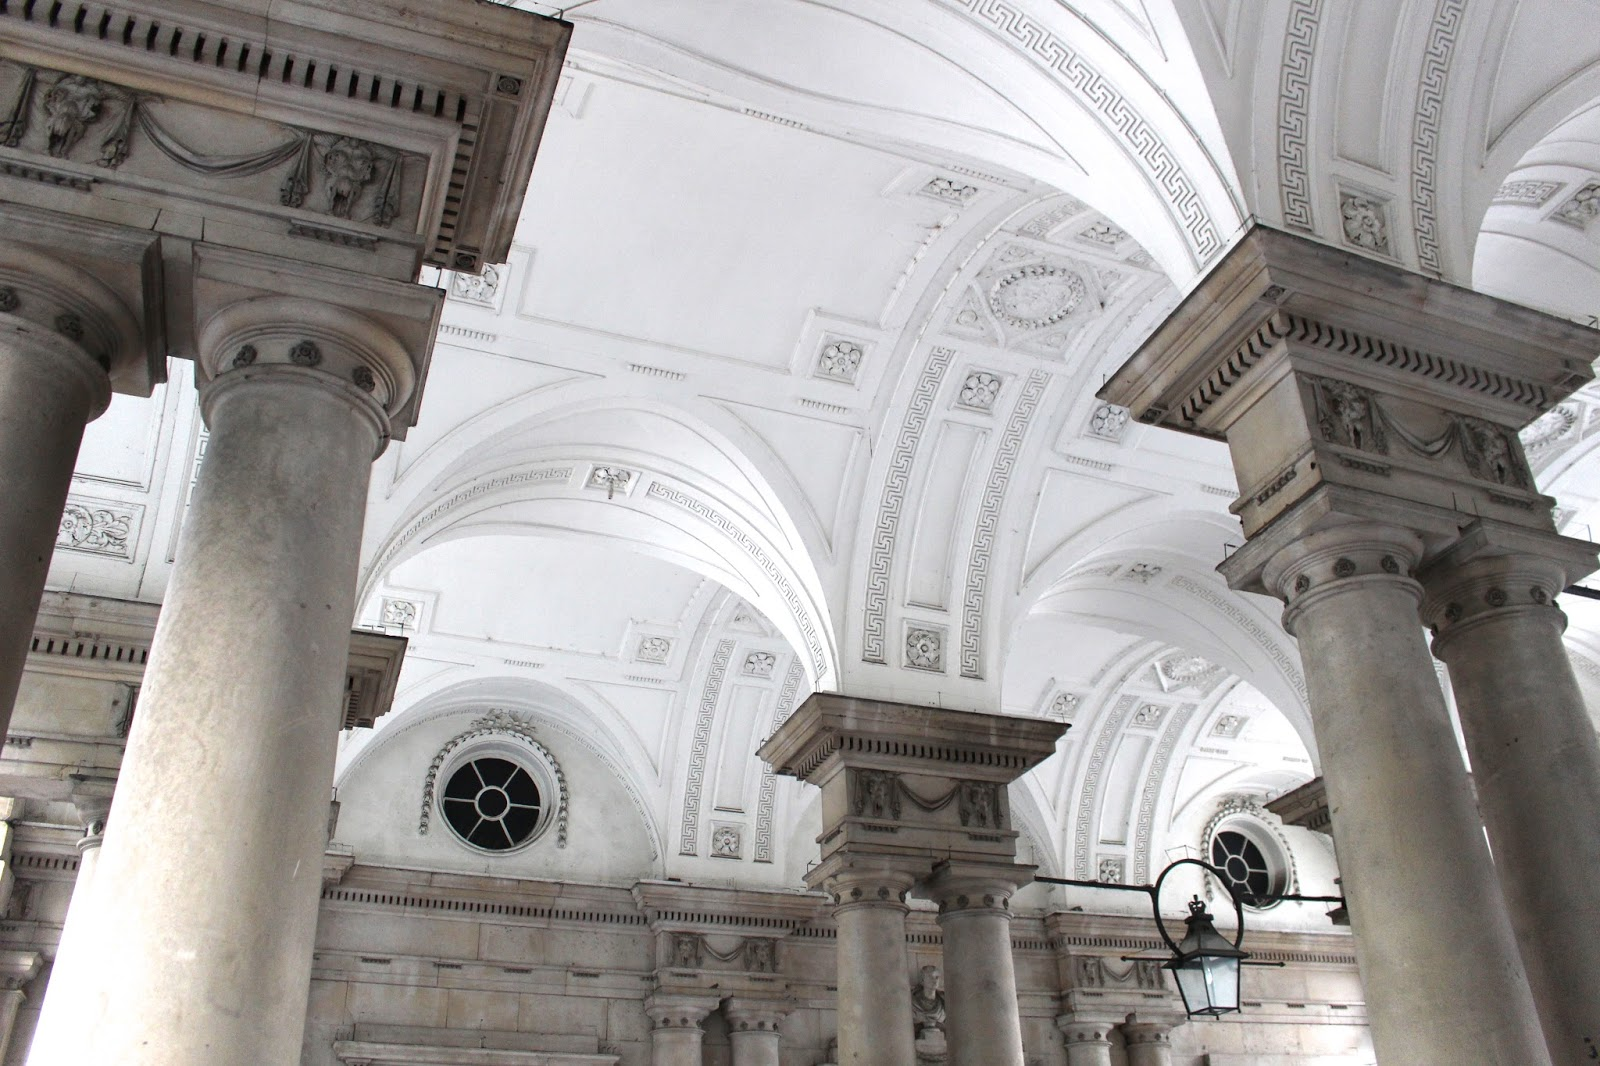 Somerset House entrance architecture ceiling